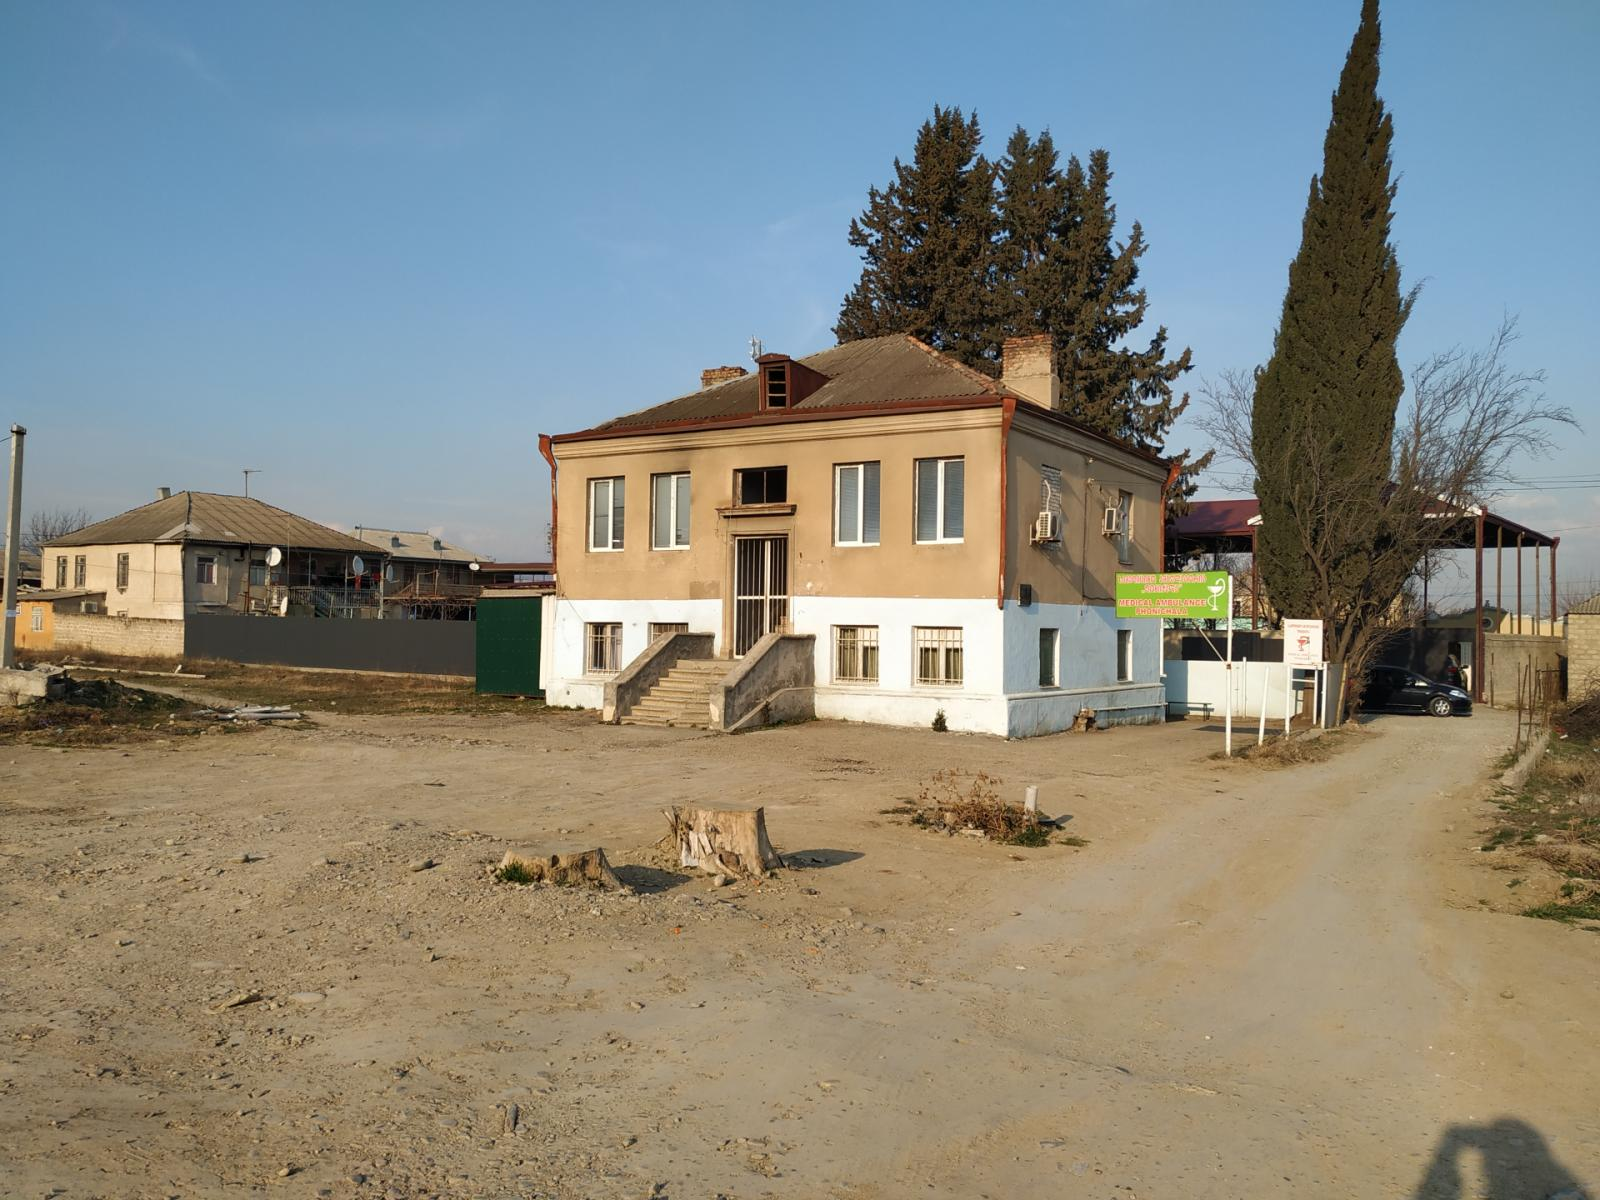 The clinic in Lower Ponichala where Emzar Abuladze works. (Credit: Ulviyya Aliyeva)